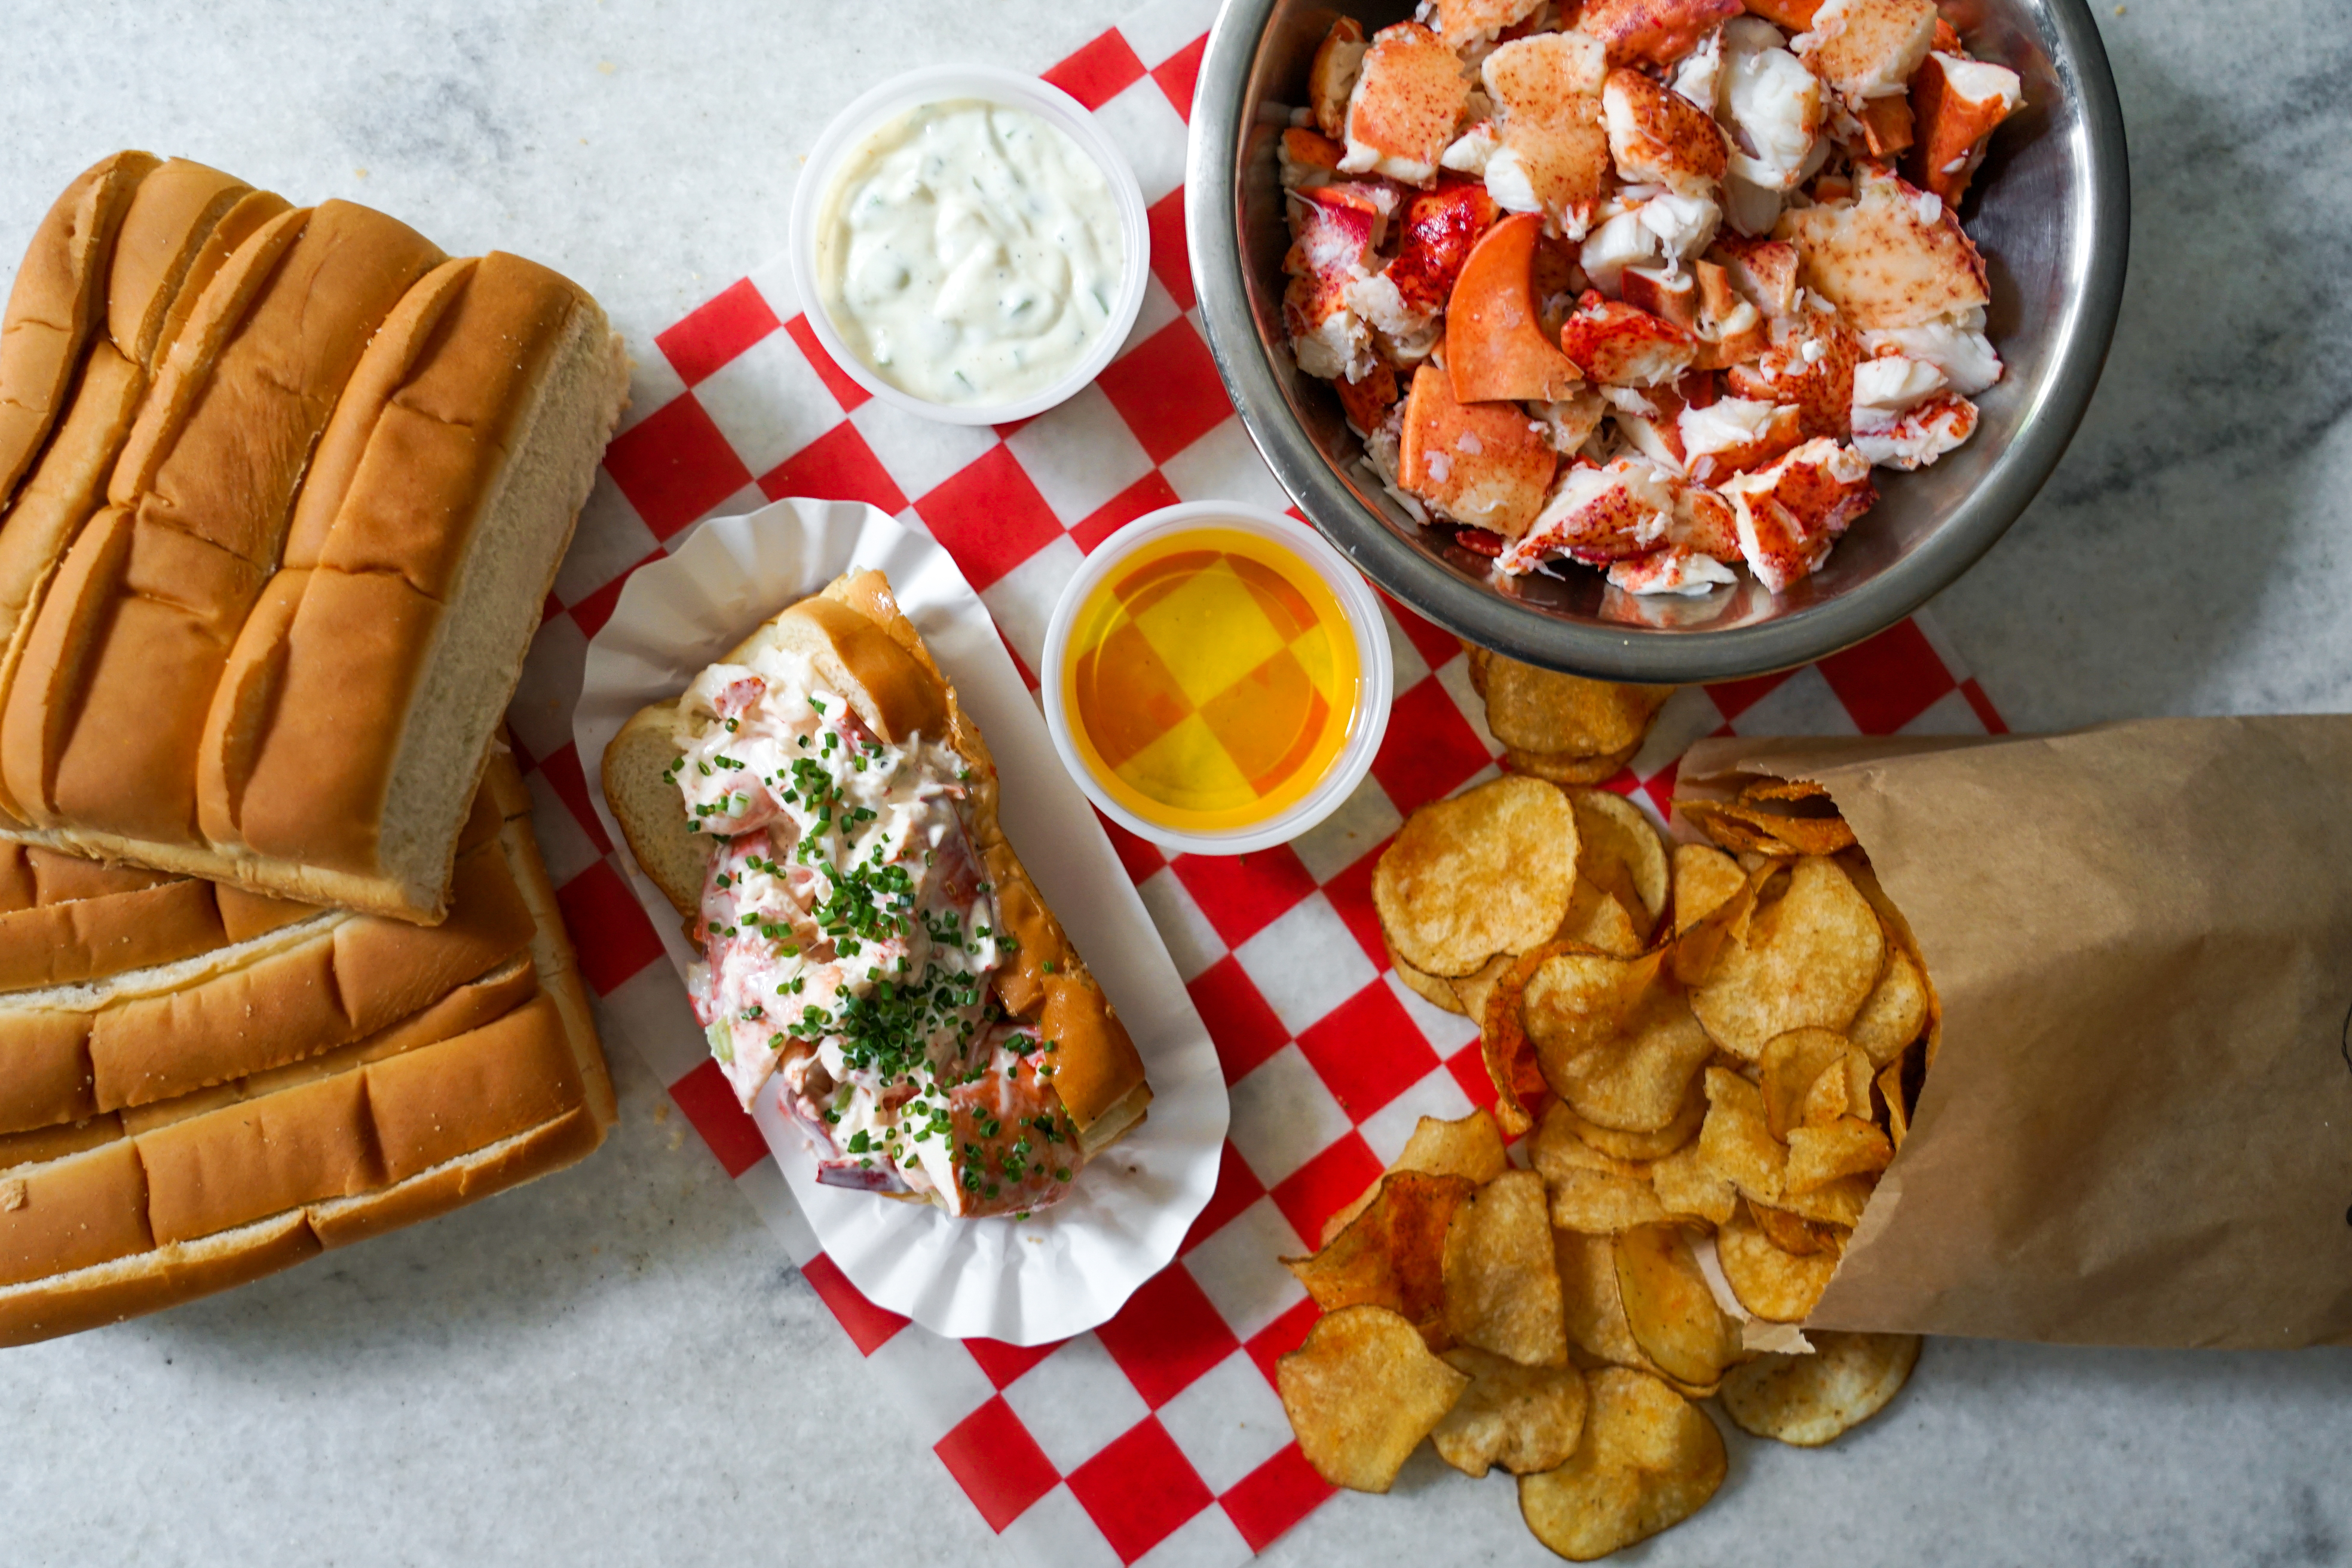 lobster roll, bowl of lobster chunks, potato chips in brown paper bag, and bread rolls on a red and white checked placemat